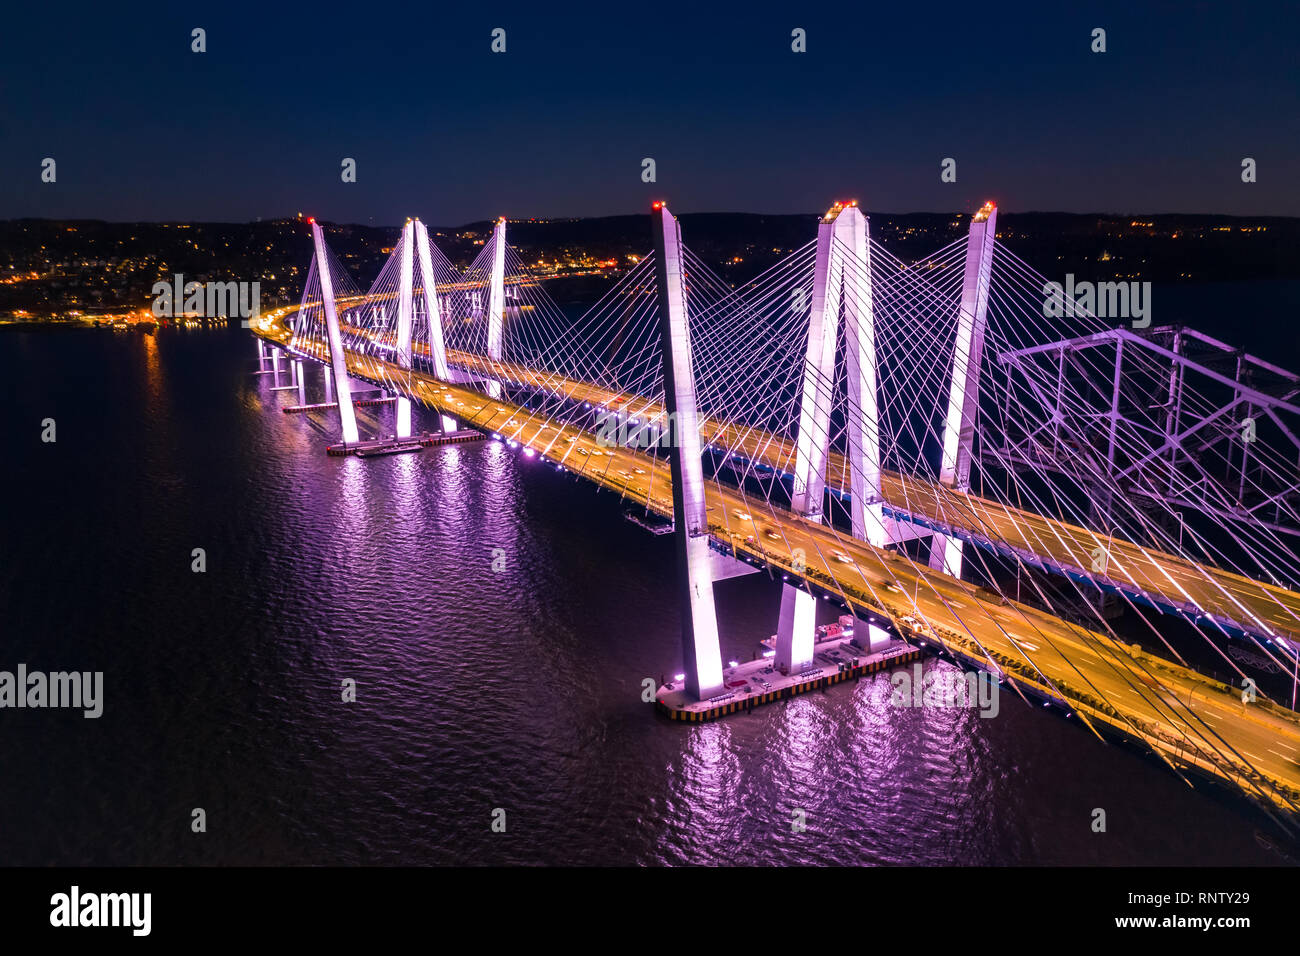 Aerial view of the New Tappan Zee Bridge - Stock Image